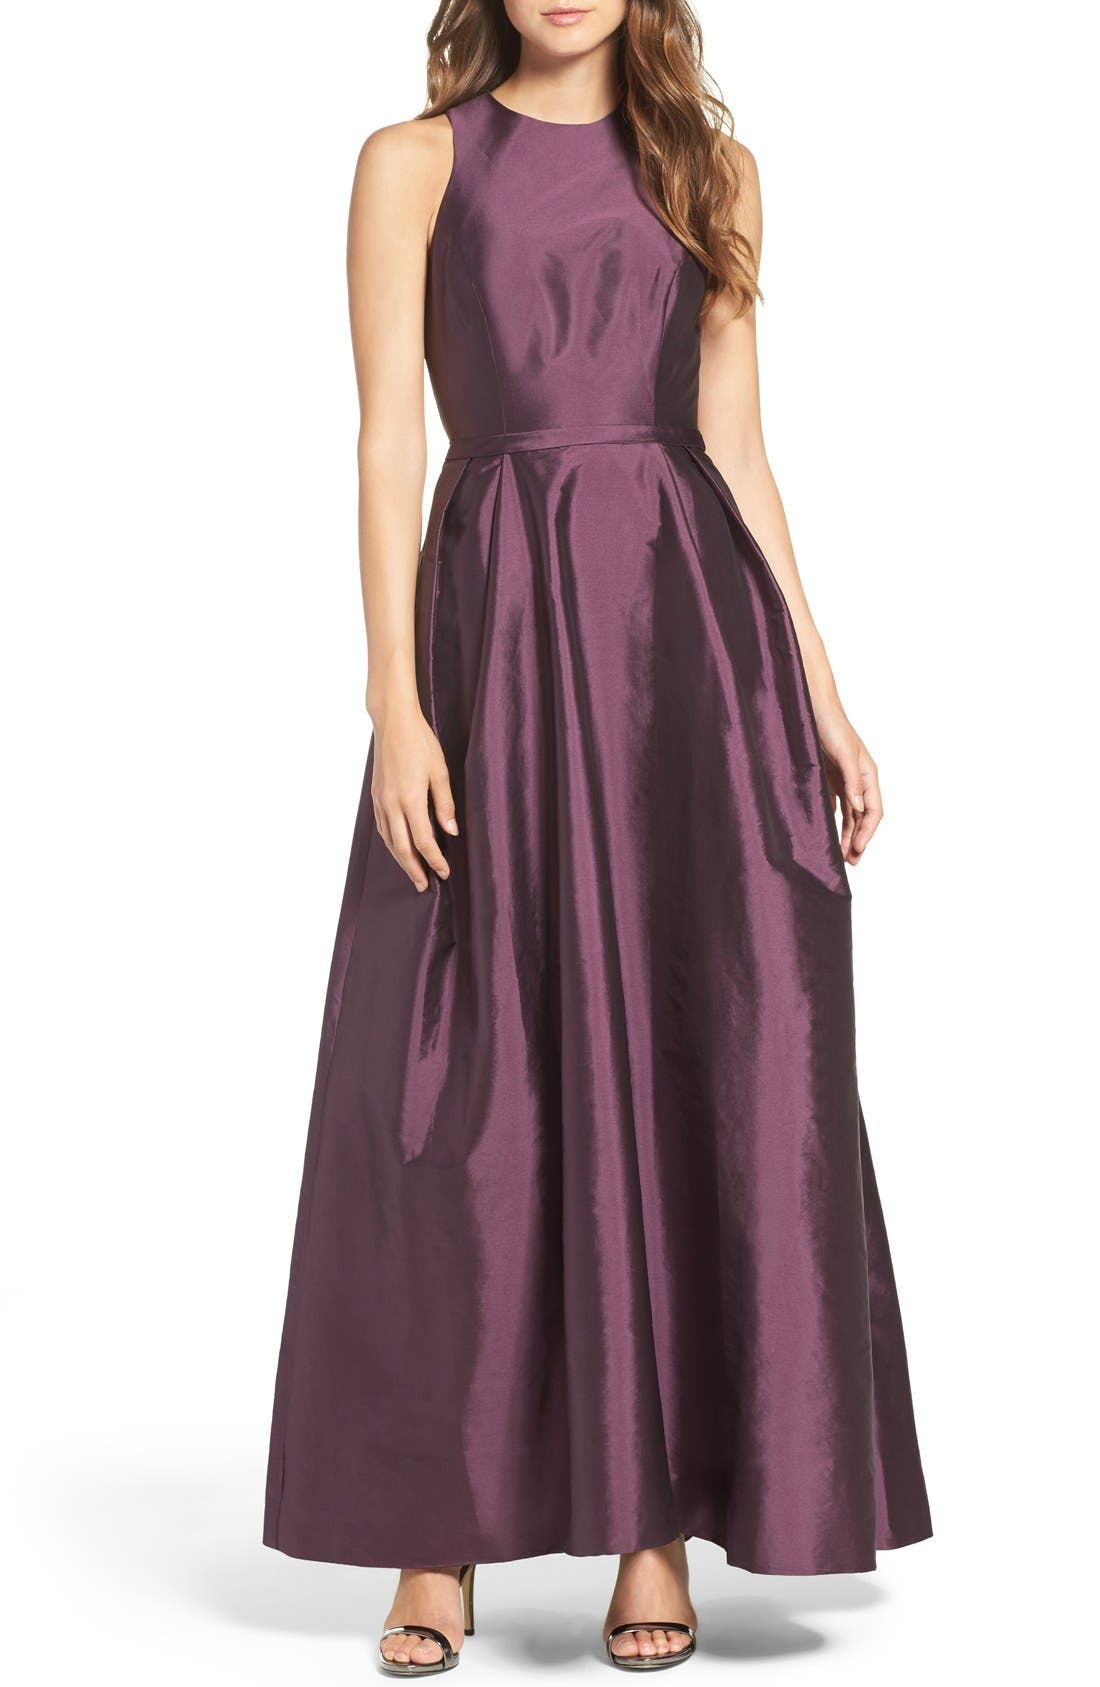 MONIQUE LHUILLIER BRIDESMAIDS Cross Back Taffeta Gown